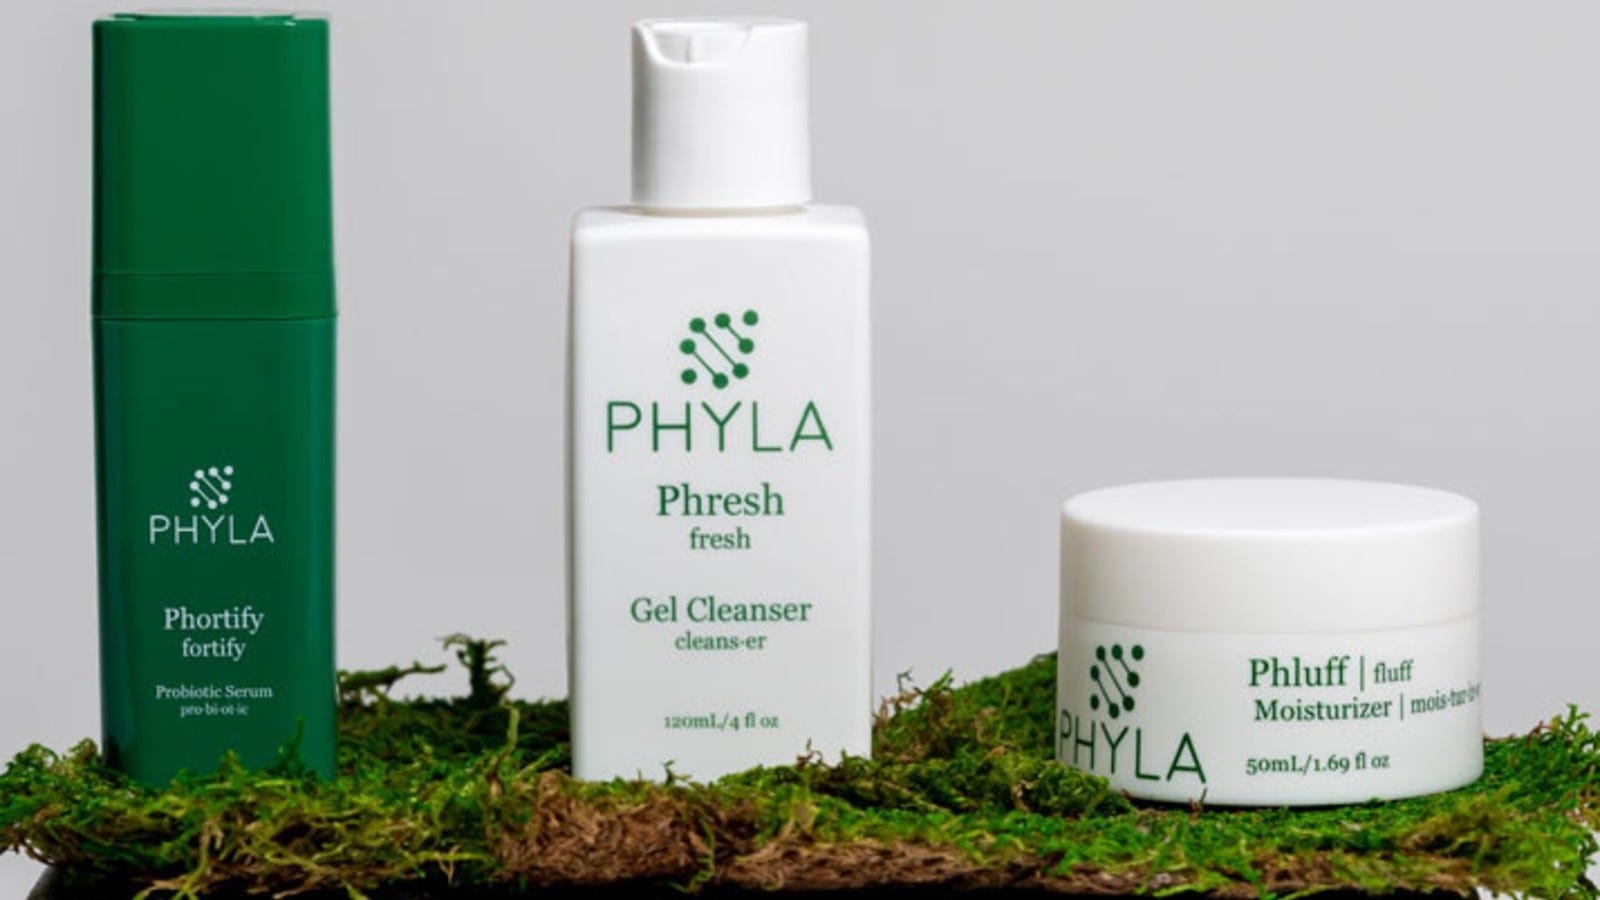 Three bottles of Phyla skincare products.